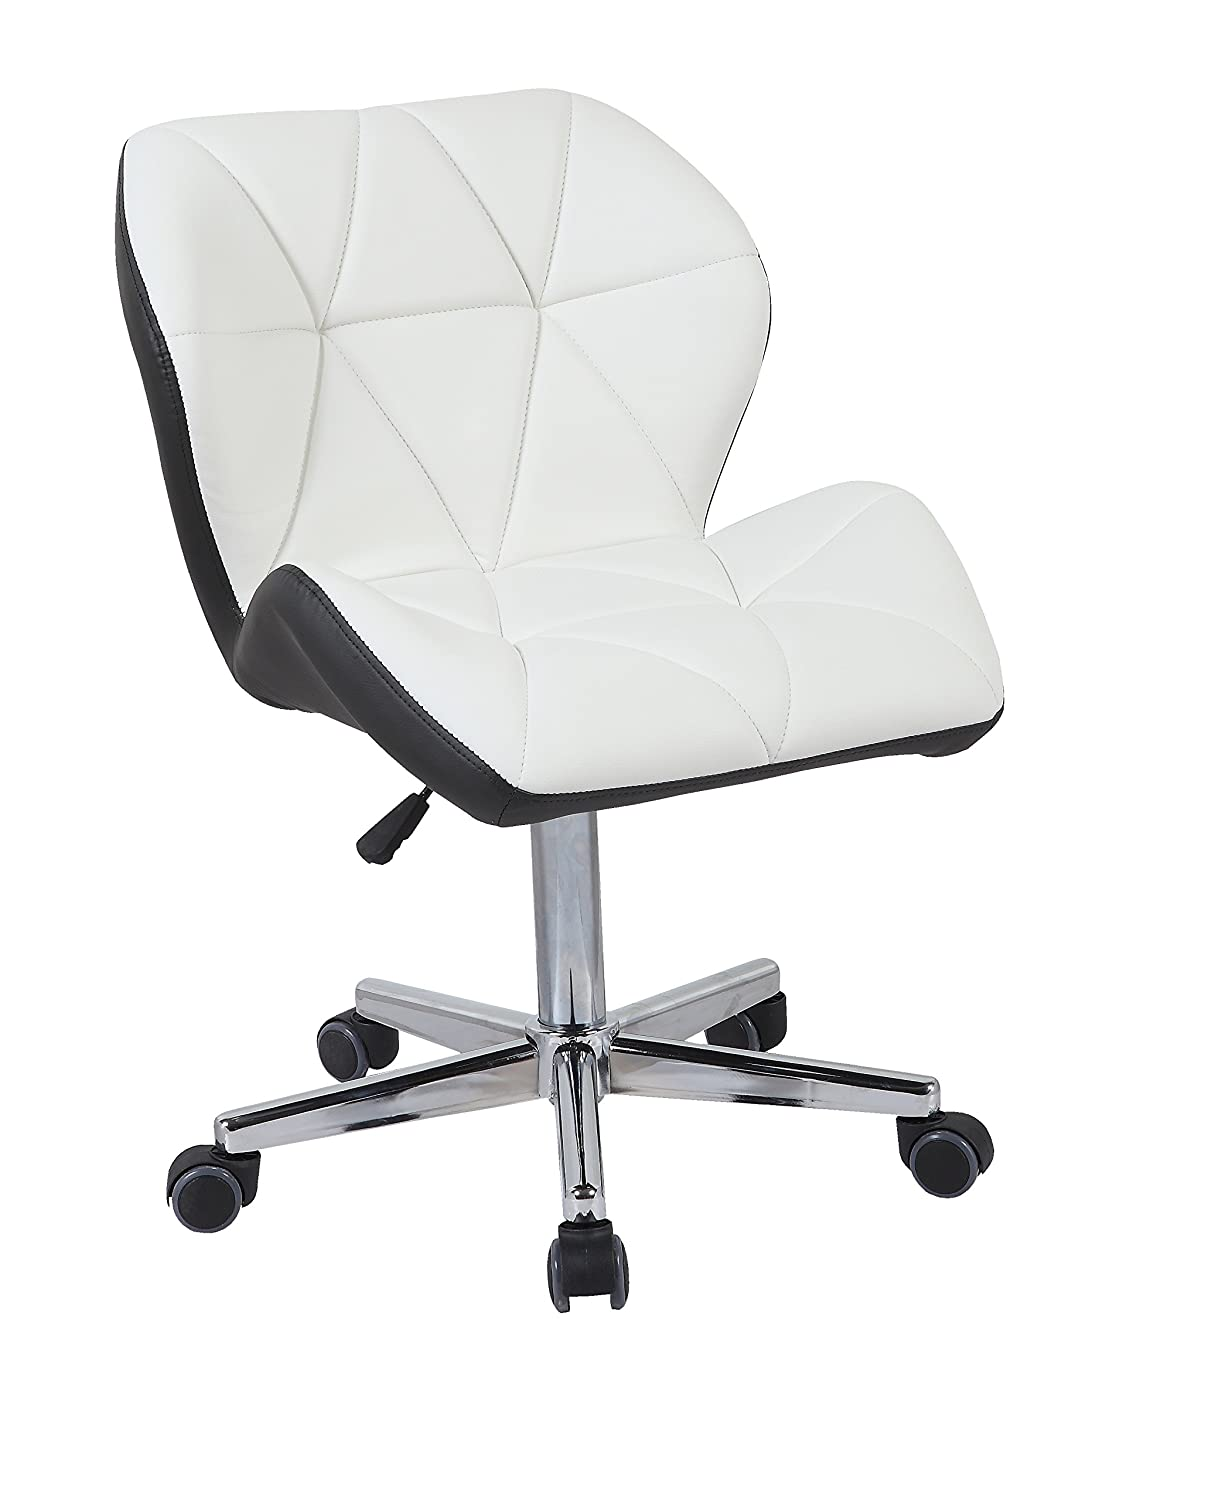 HNNHOME Modern Uranus Padded Swivel Leather Computer Desk Office Chair Mixed Color (WHITE/BROWN)